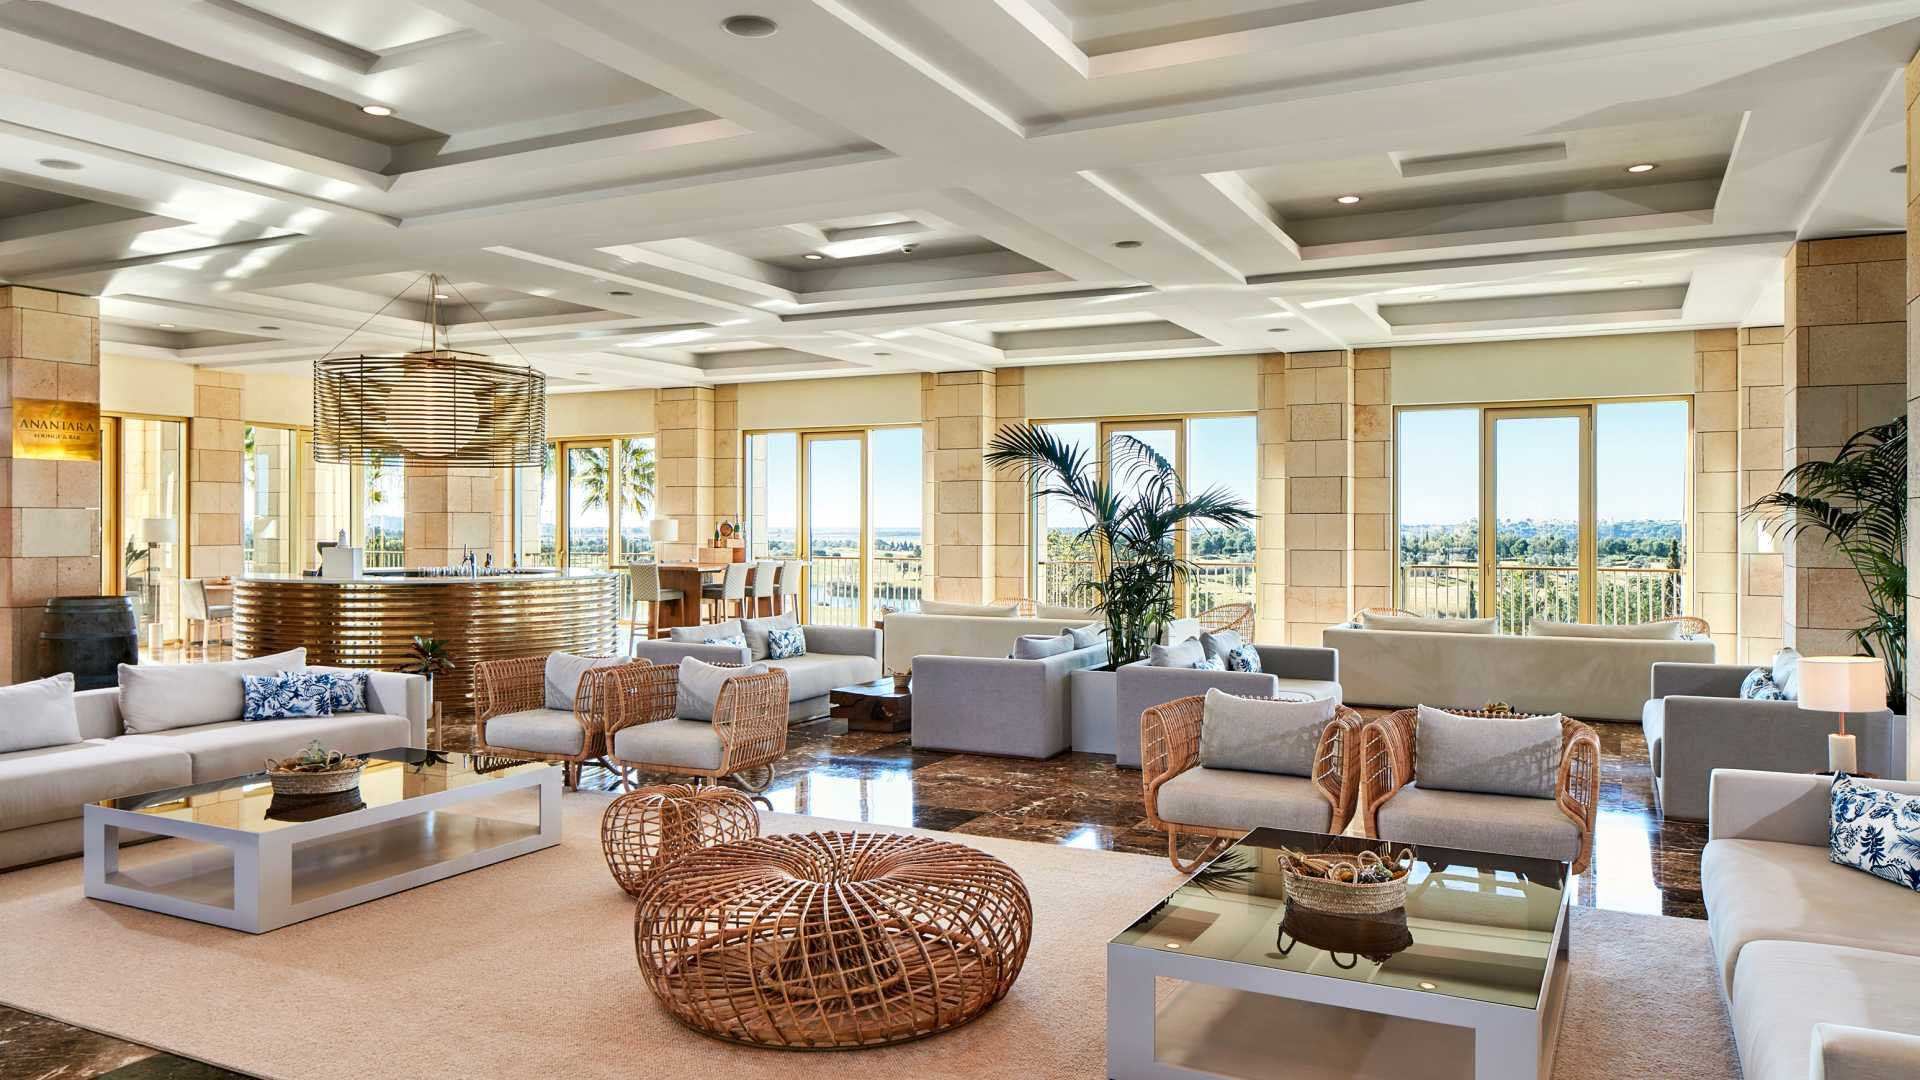 Anantara Vilamoura anantara spa Anantara SPA is one of the most luxurious spas in the world Anantara Vilamoura 5